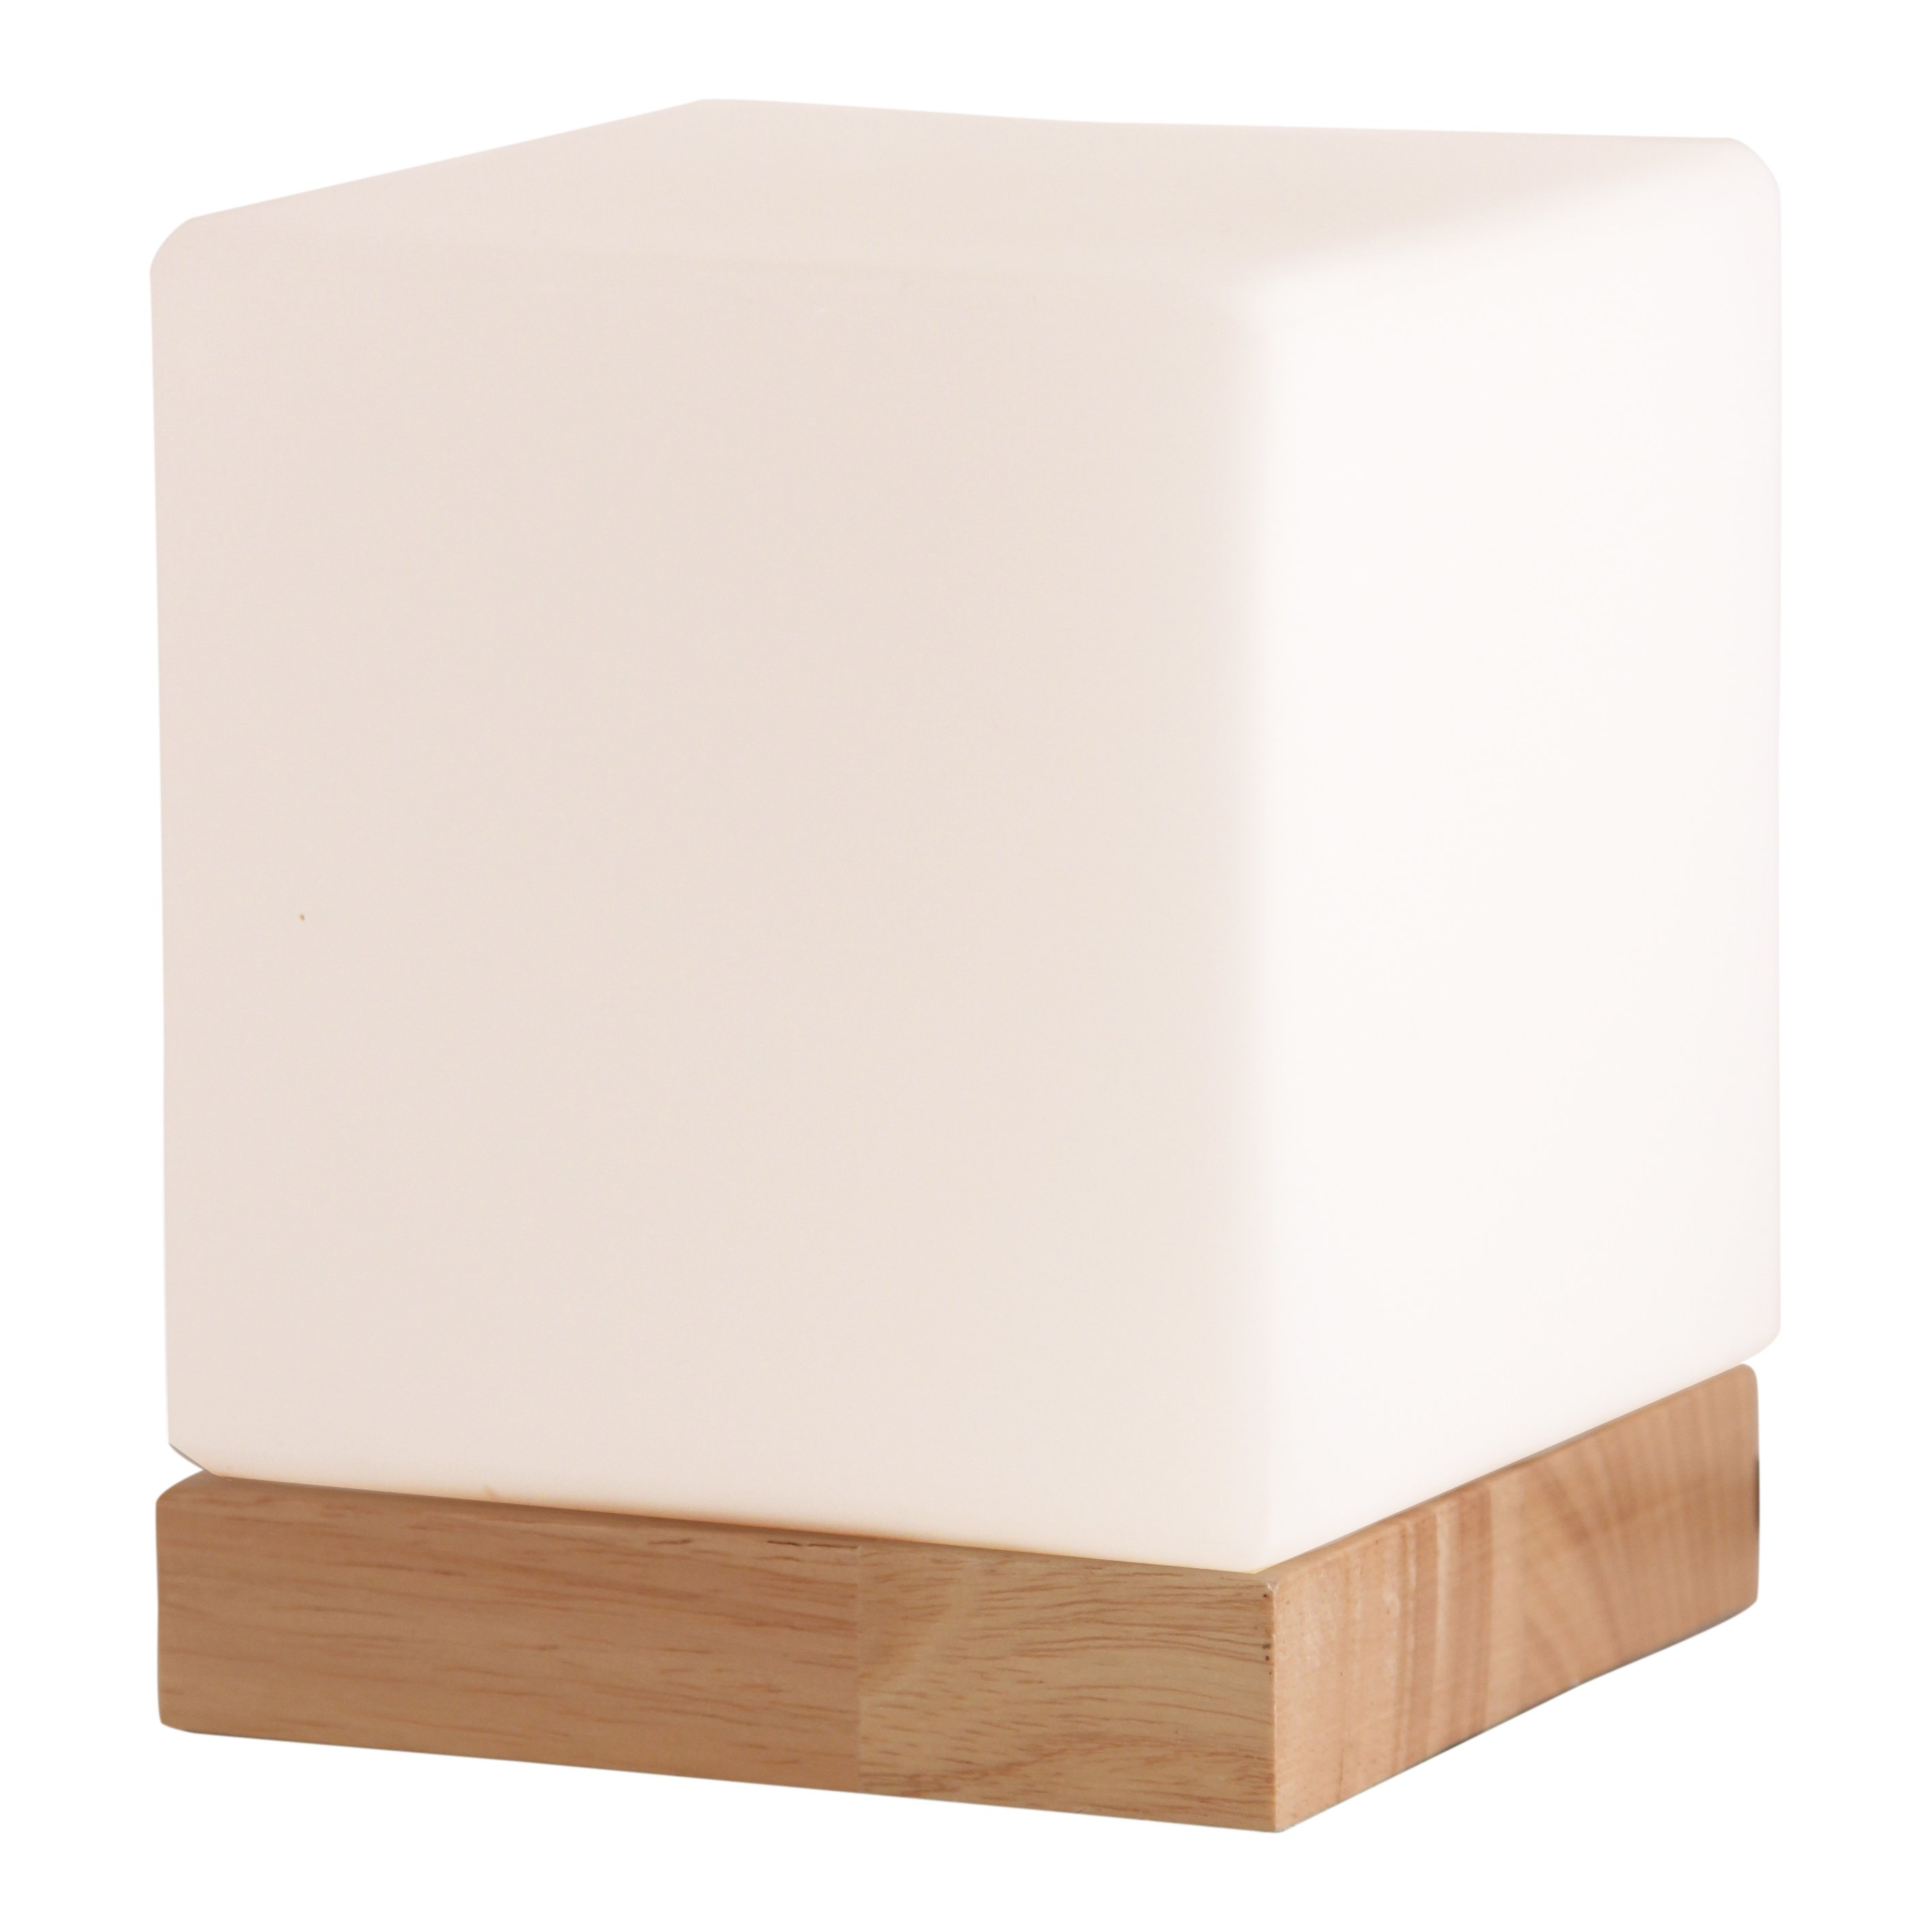 light accents small table lamp cube accent glass shade with natural wooden base narrow entryway furniture wood end nate berkus marble freedom side tables dark console drawers kids